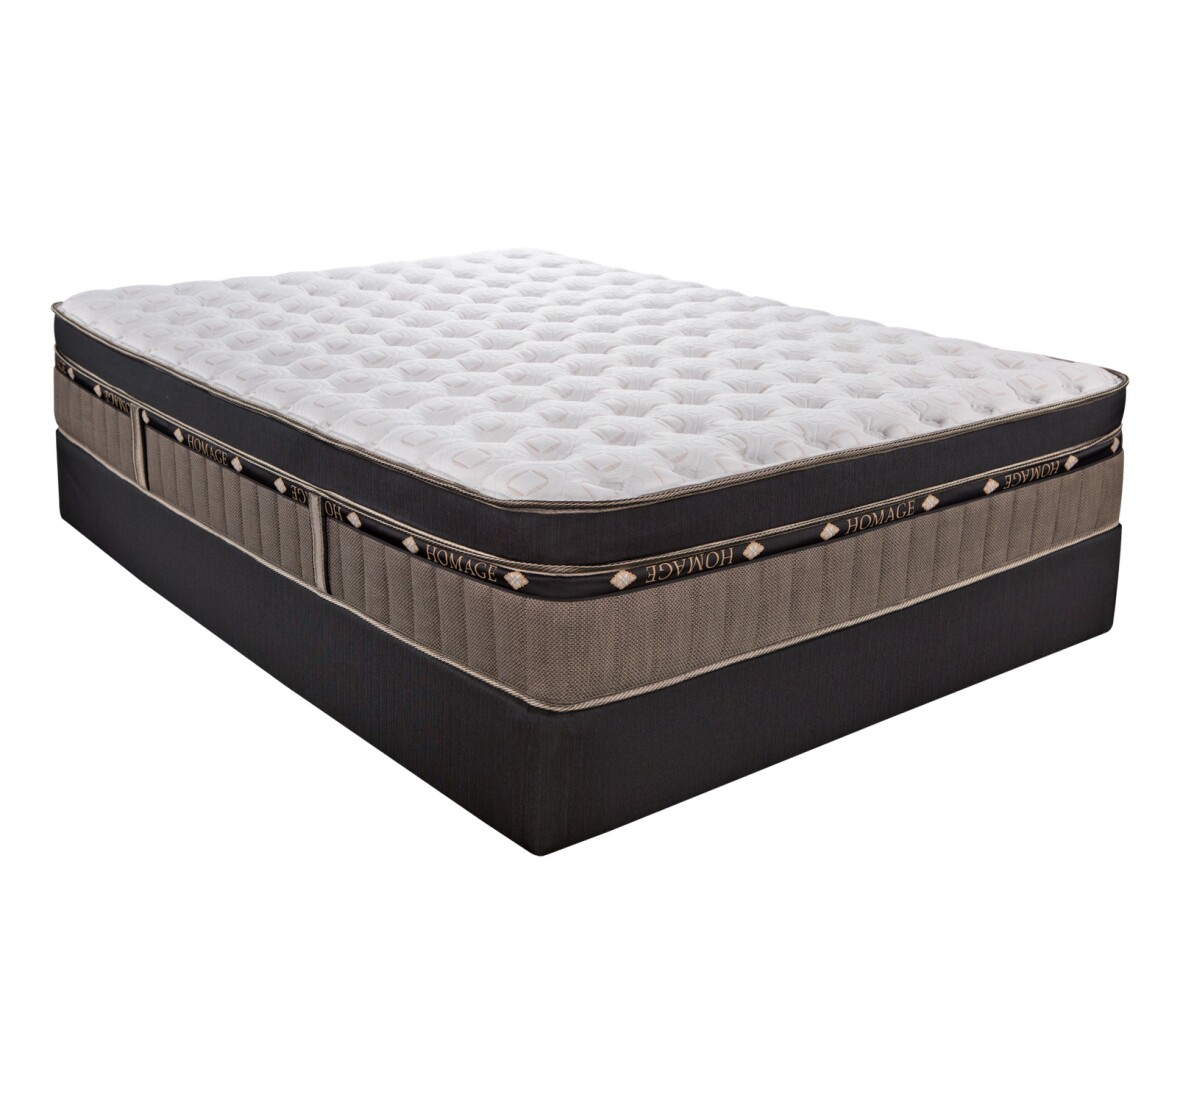 127149_Homage_Respect Plush Euro Top Mattress  (4).jpg